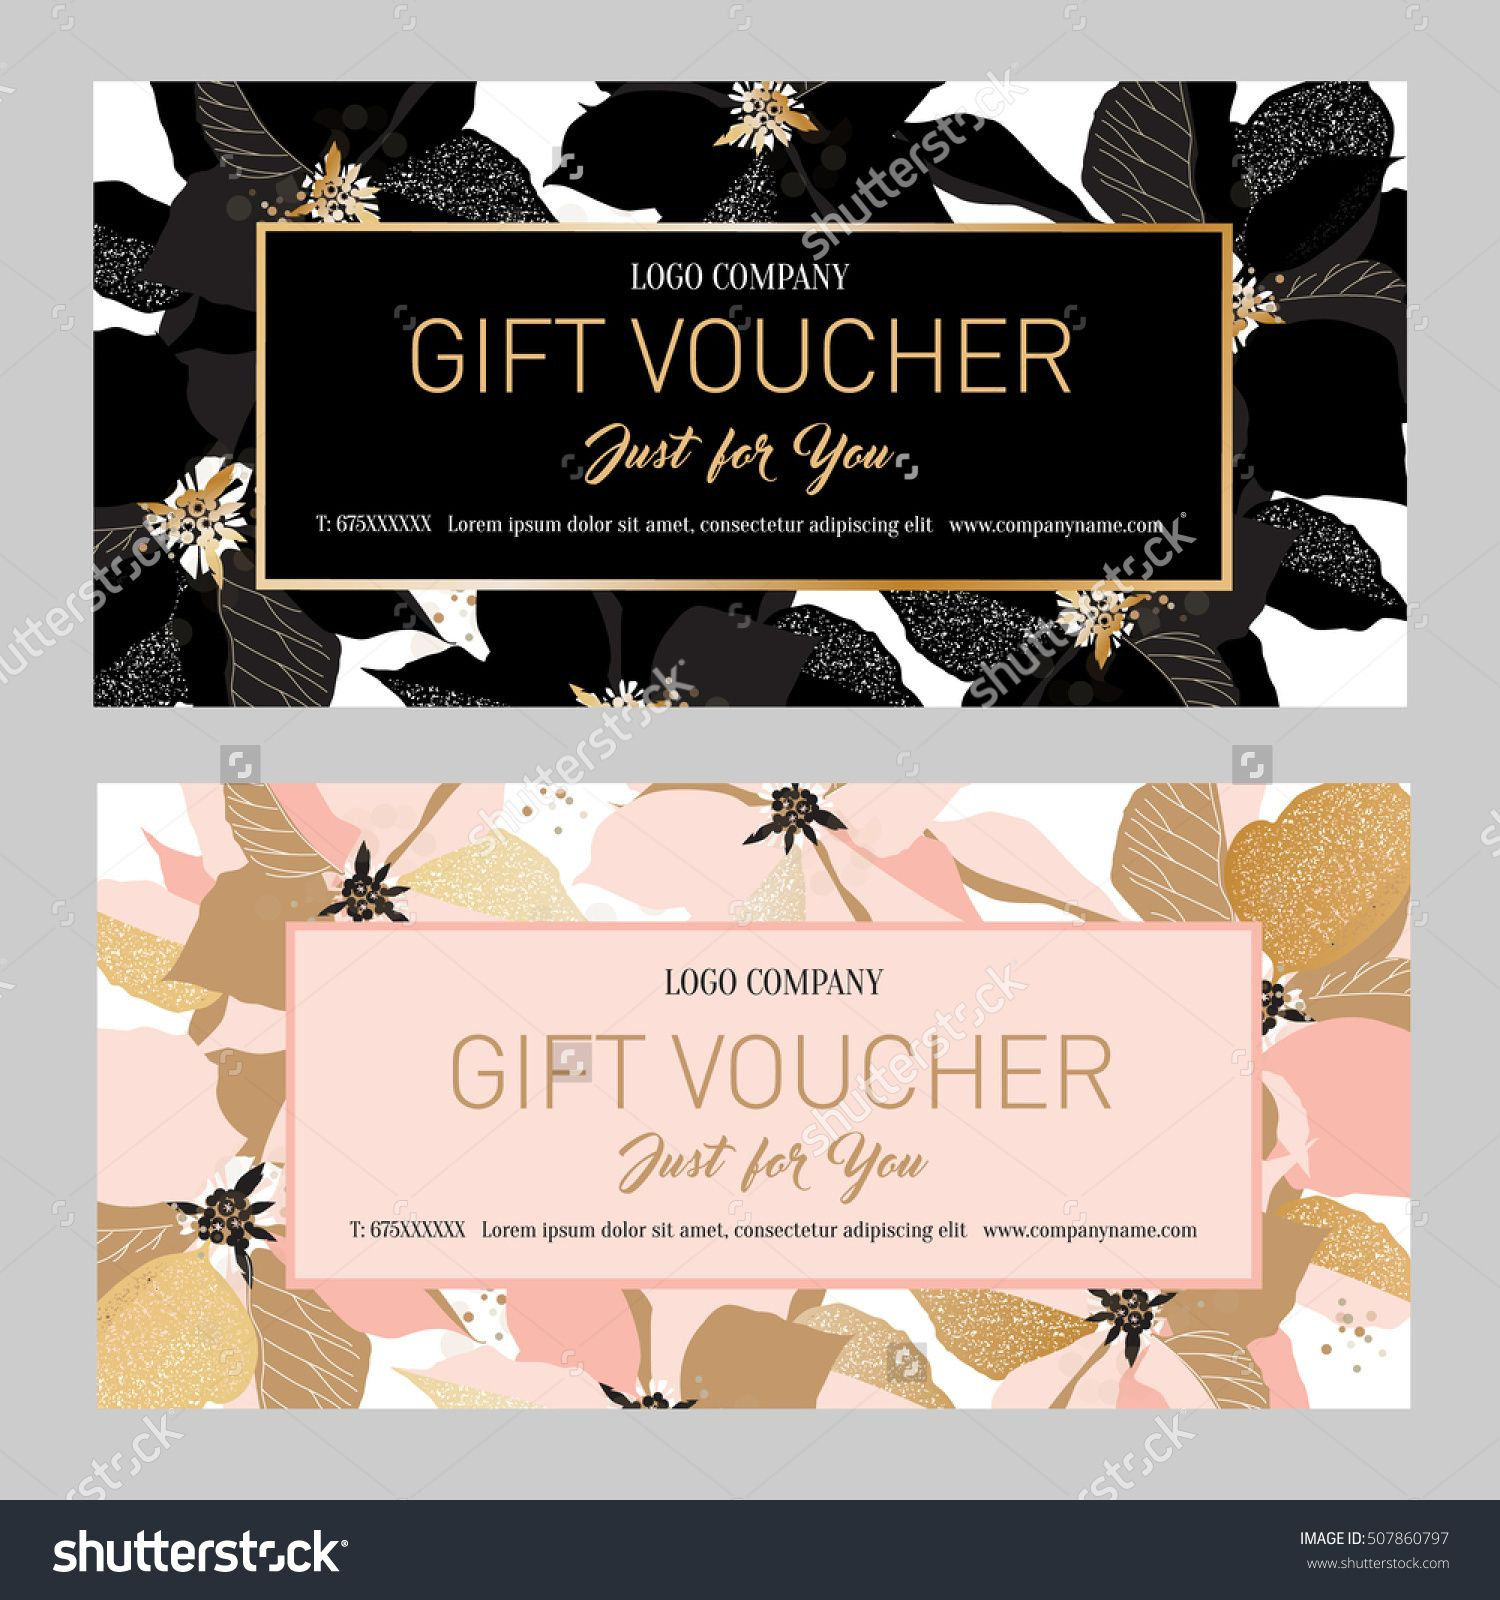 Gift Cards For Cllotheske Upo Nail My Wish List 3